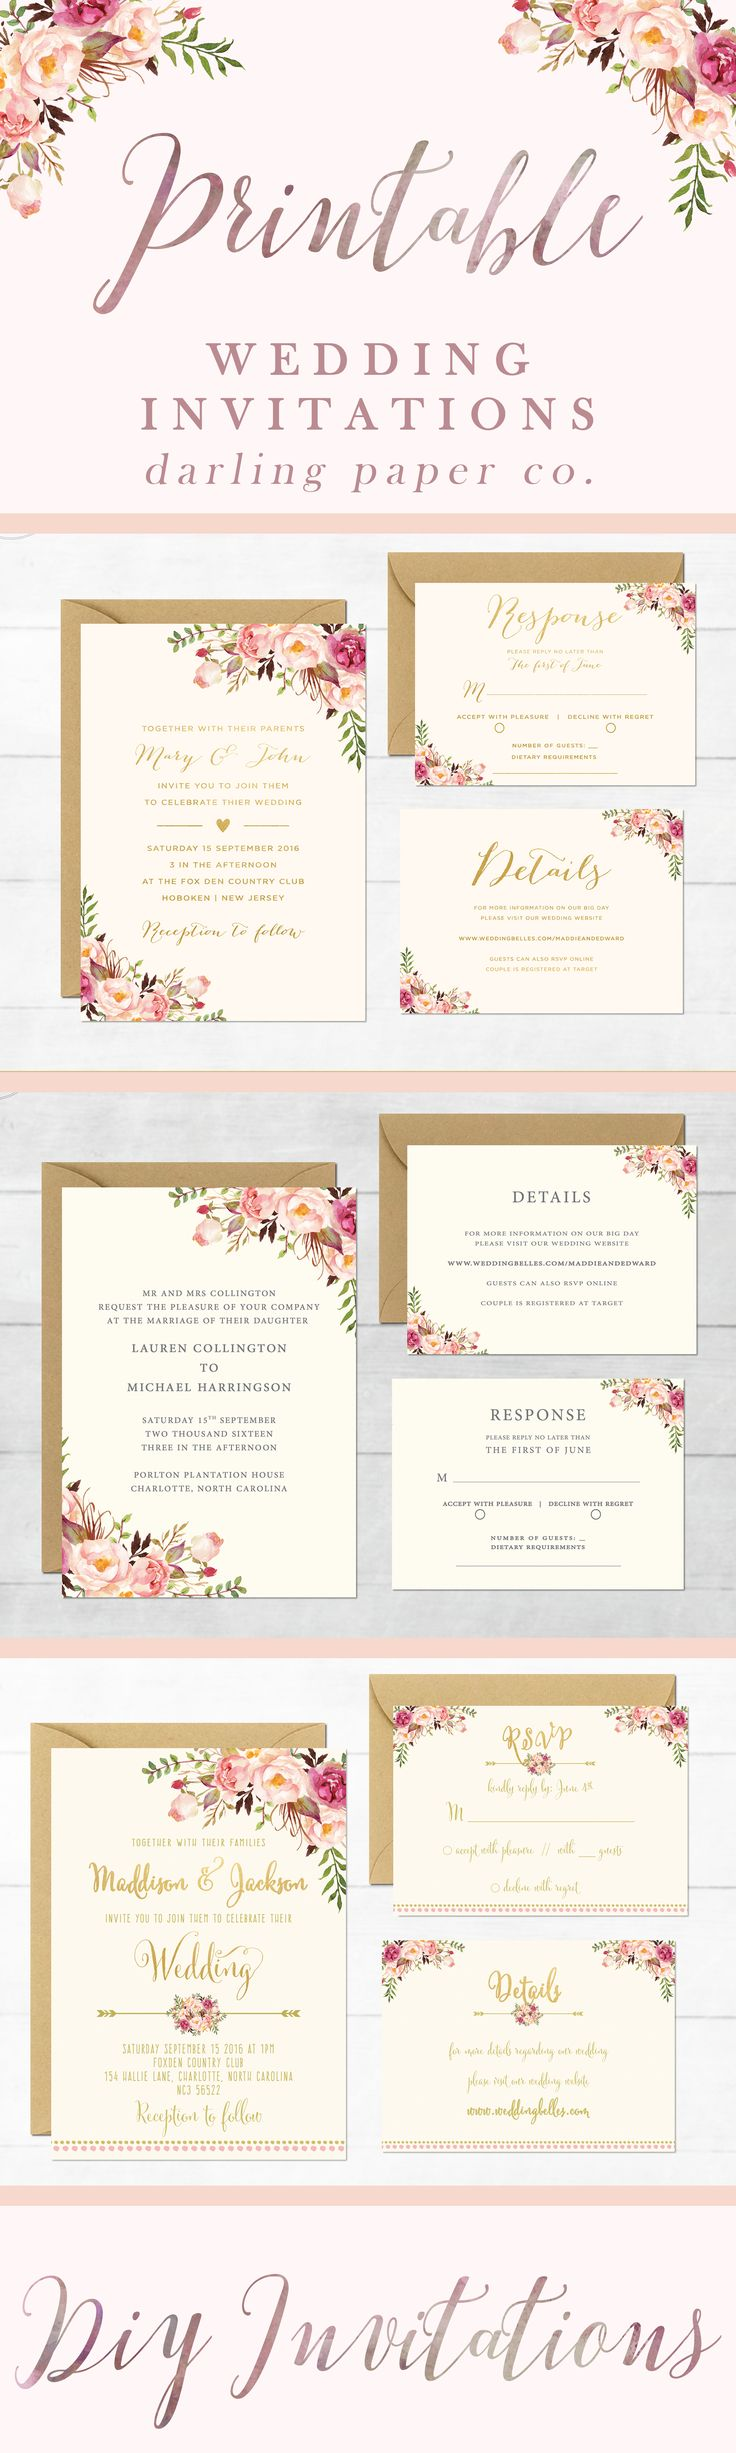 Wedding Invitations DIY   Printable Wedding Invitations   Floral Wedding  Suite   Boho Wedding   Chic